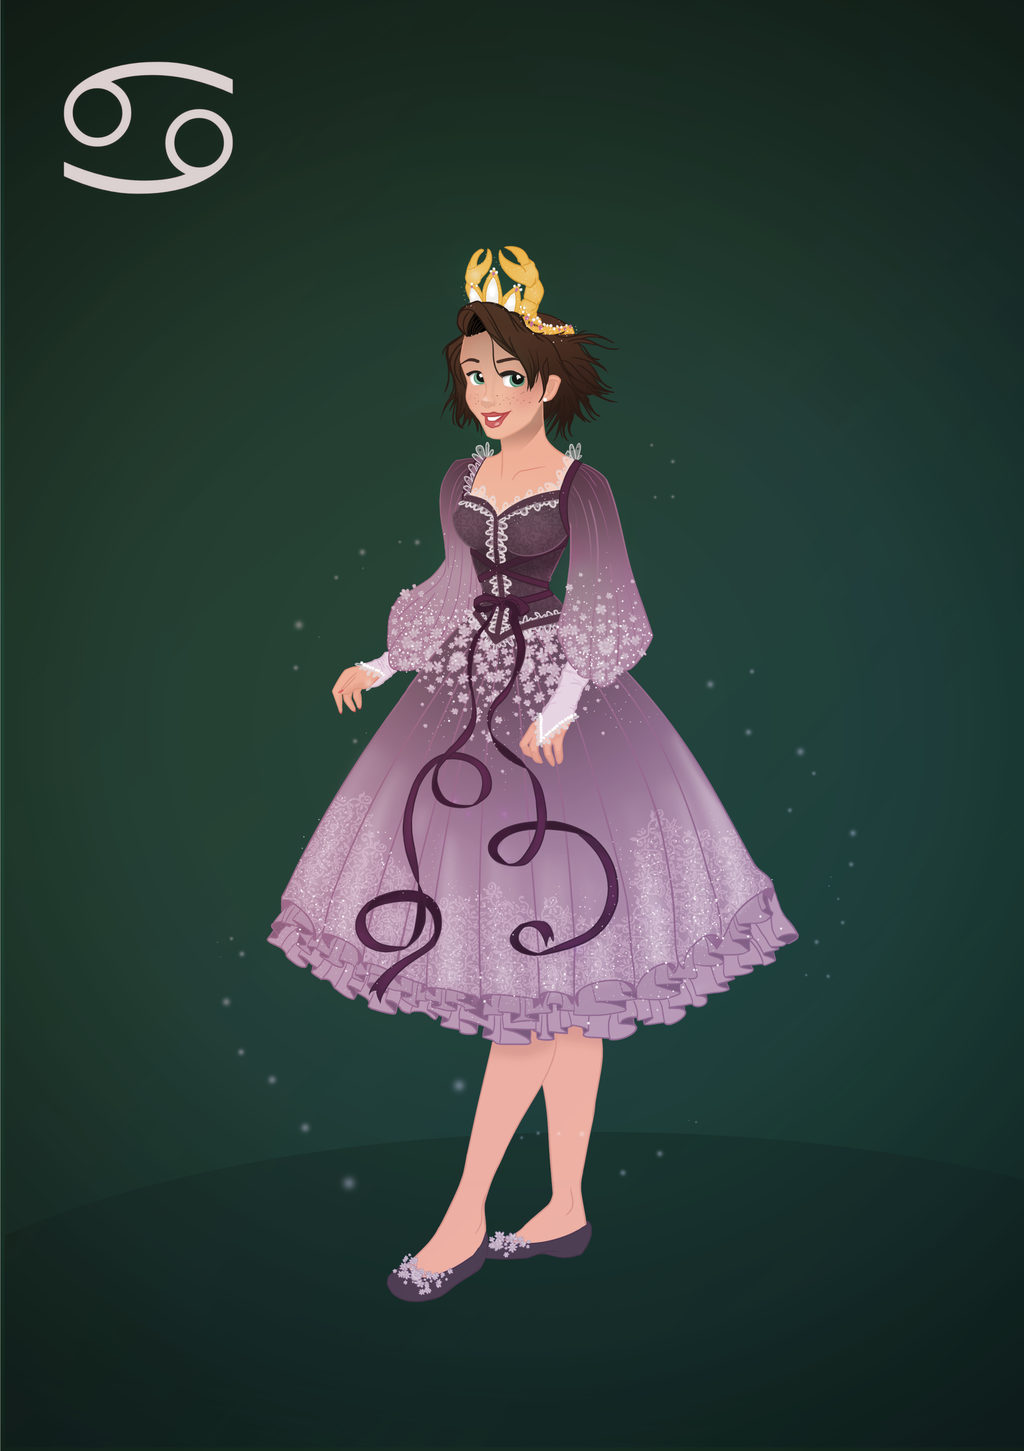 Cancer-Lucy Corsetry (Bishonenrancher) — princessesfanarts: Zodiac Princesses by Grodansnagel